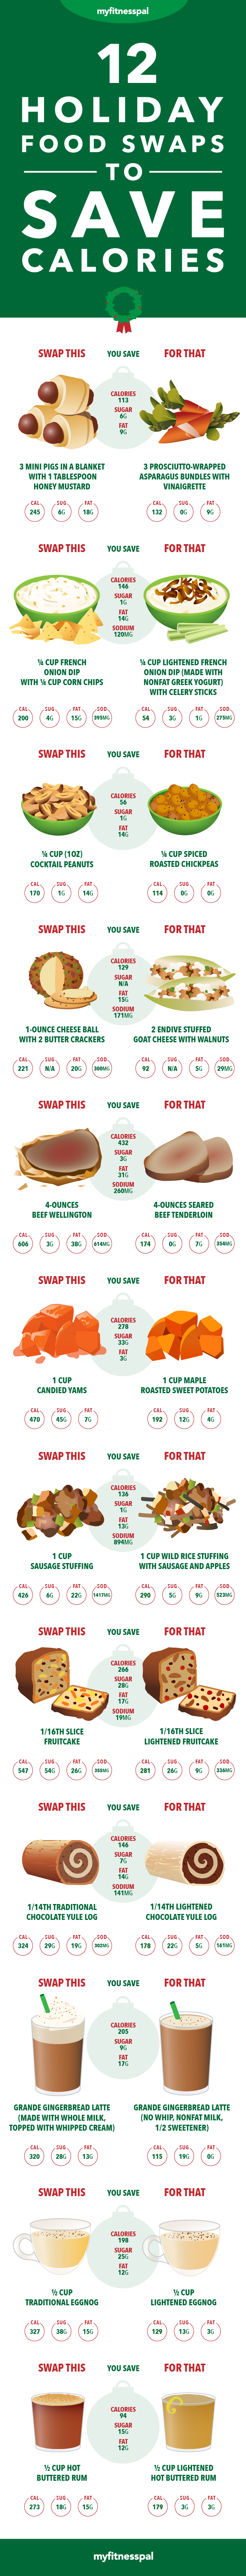 12 Holiday Food Swaps Final (1)